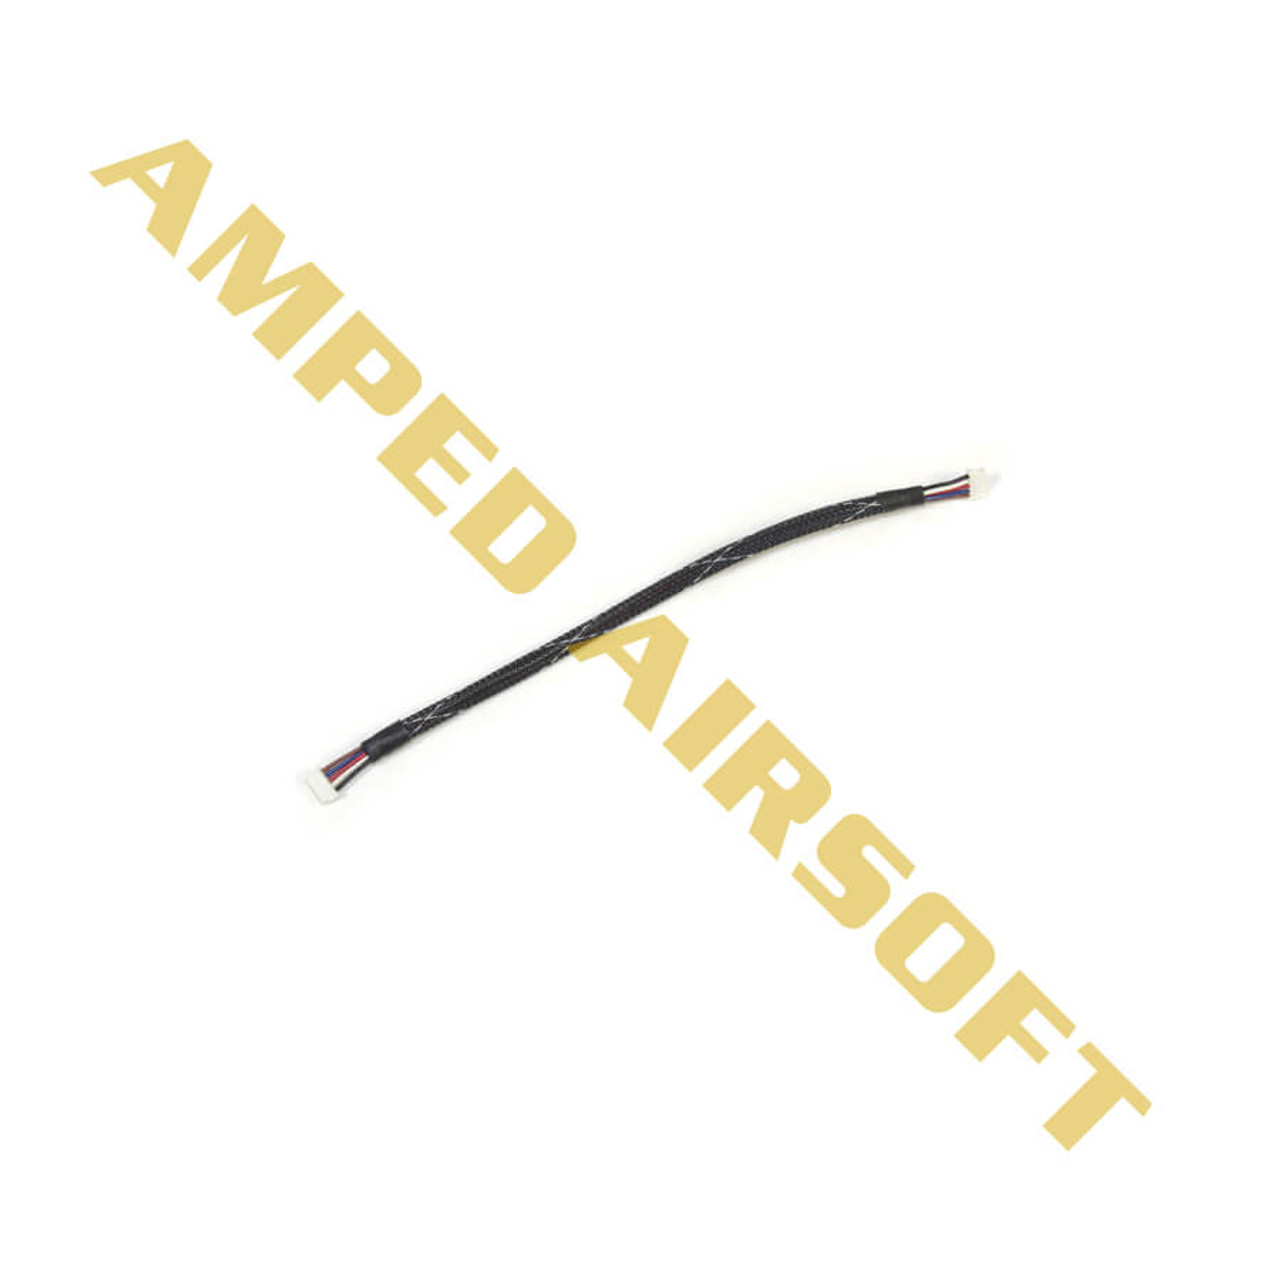 PolarStar - Fusion Engine/JACK/F1/F2 Wire Harness for AK/M249 (7.5 ...